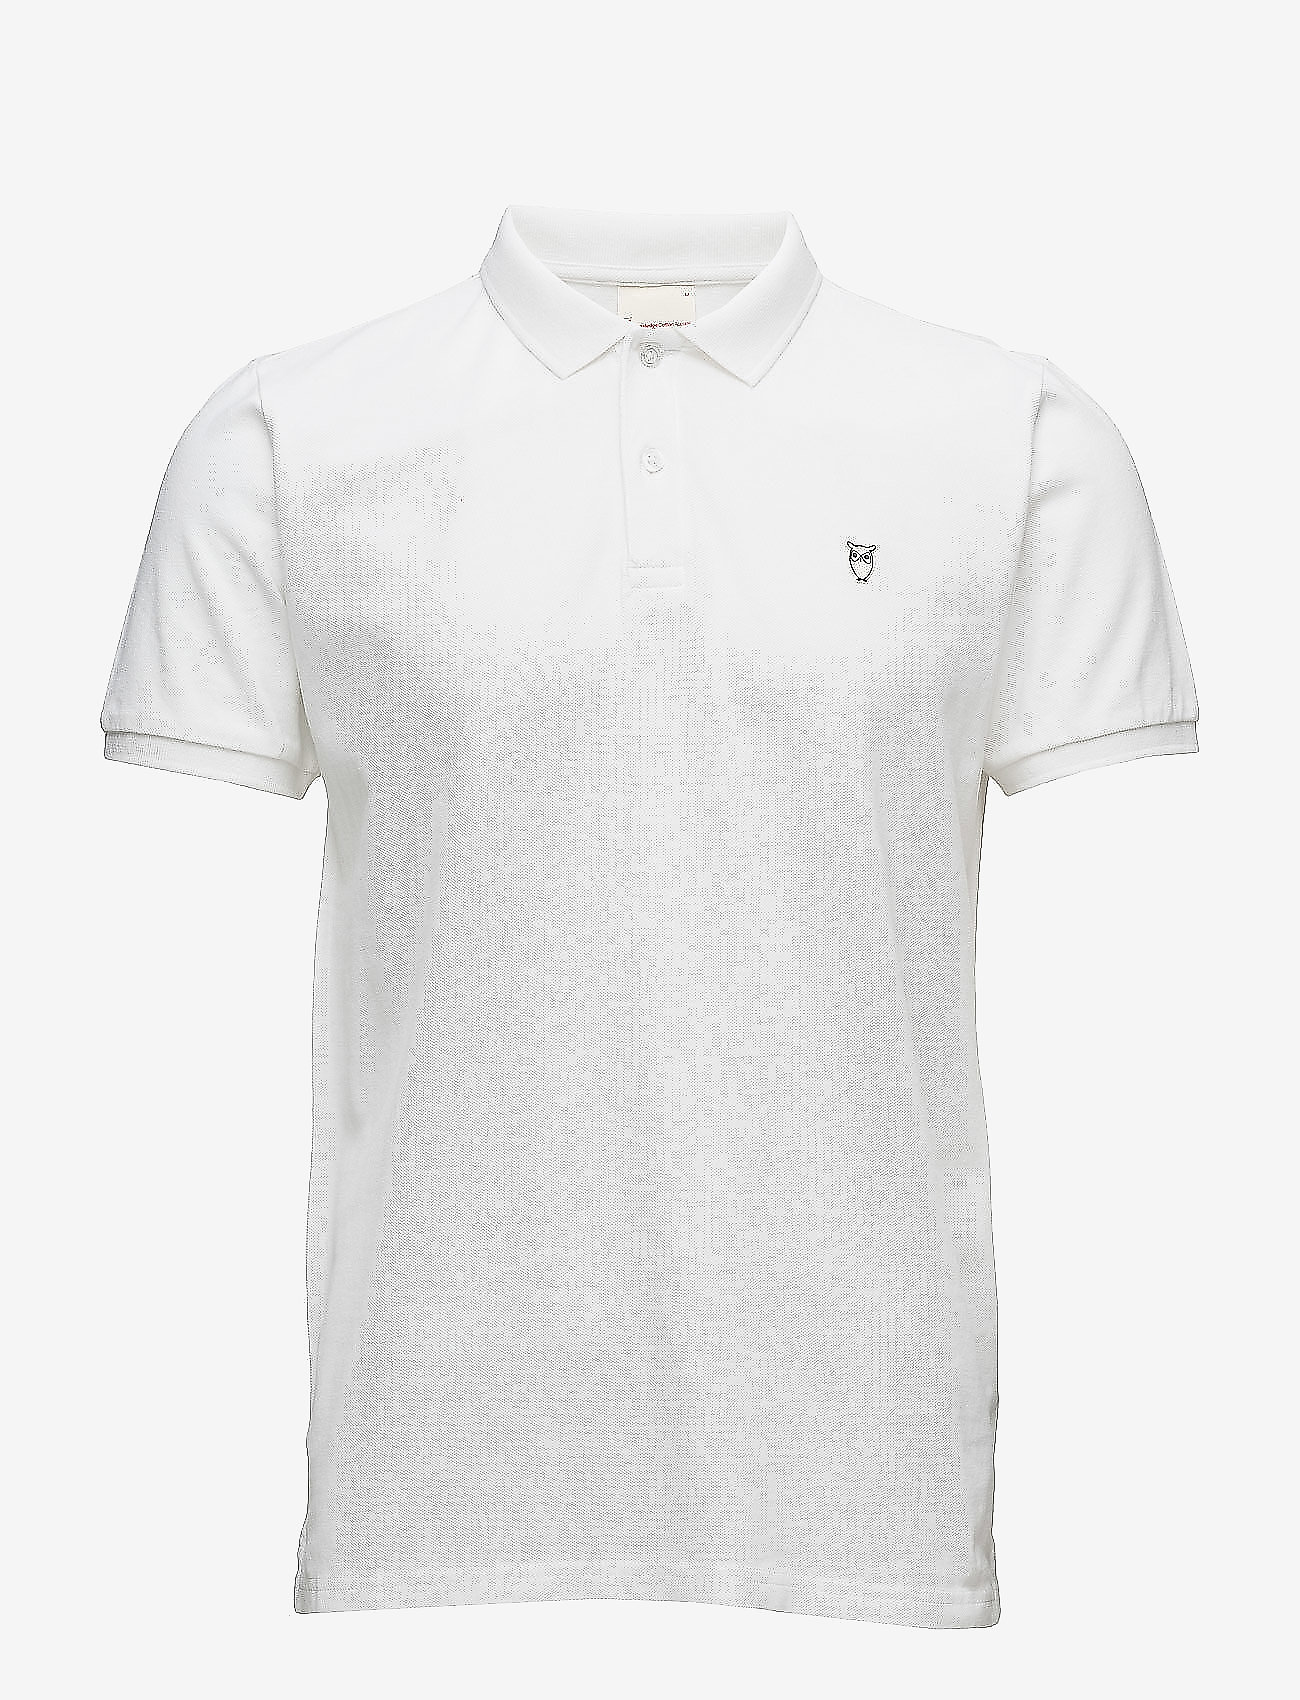 Knowledge Cotton Apparel - Pique Polo -  GOTS/Vegan - kortärmade pikéer - bright white - 0